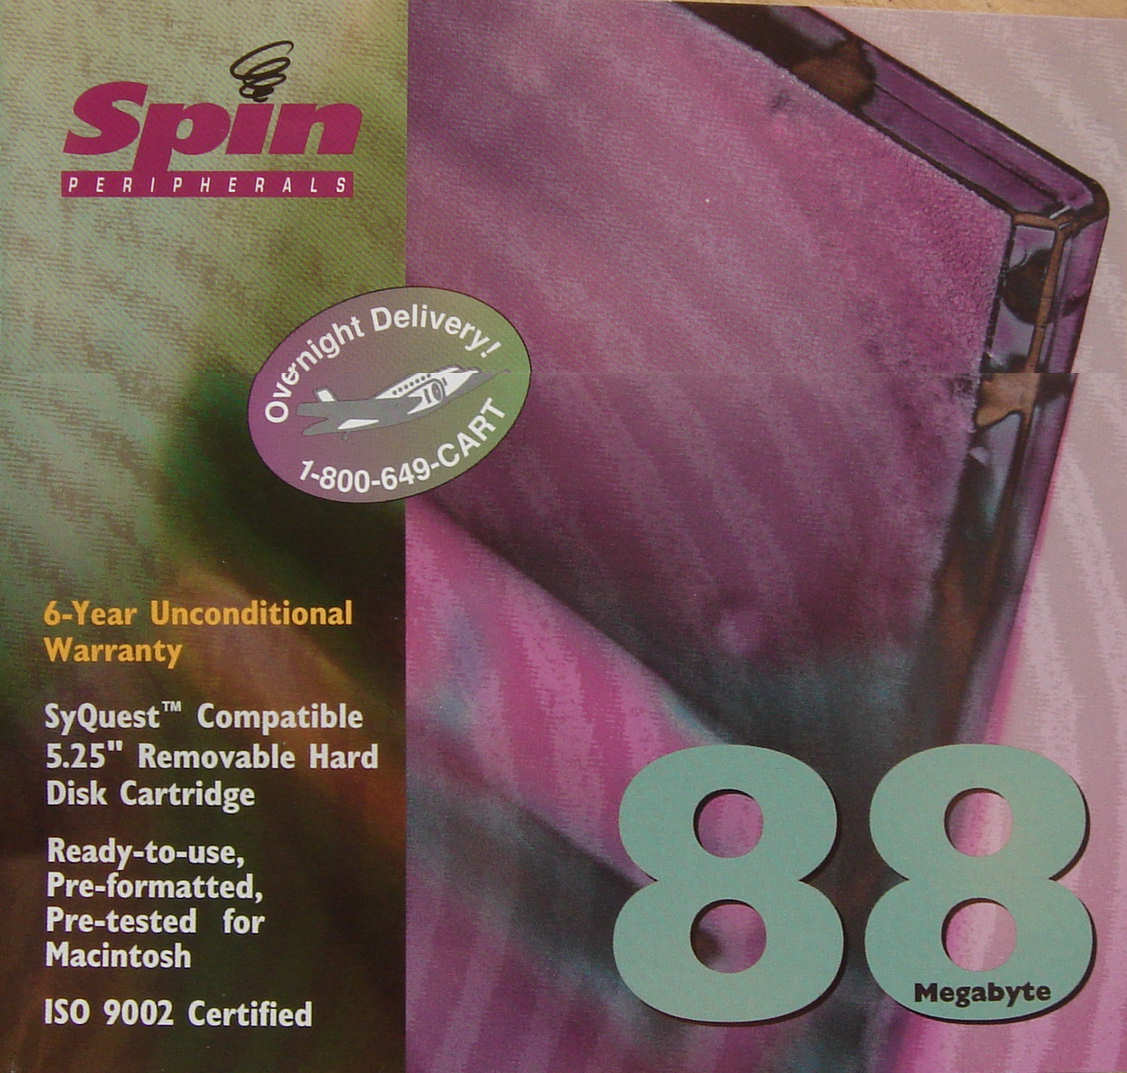 Spin Peripherals 88mb syquest cartridge